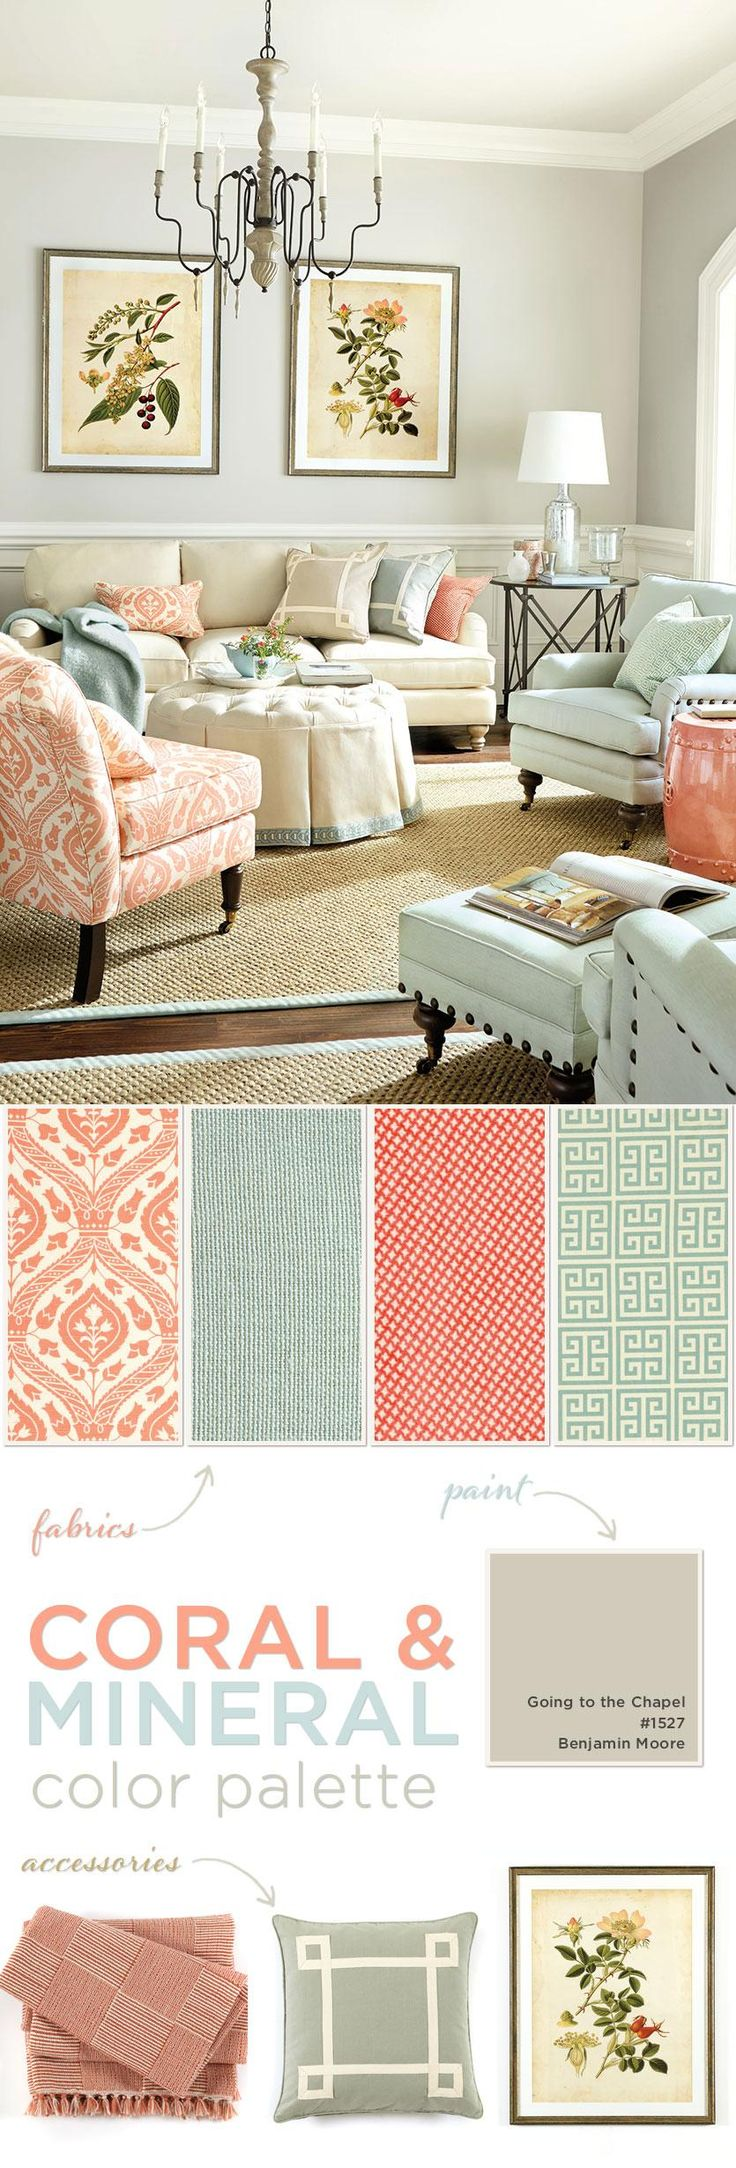 Inspired Color Palettes For Spring 2014. Dining Room ... Part 27